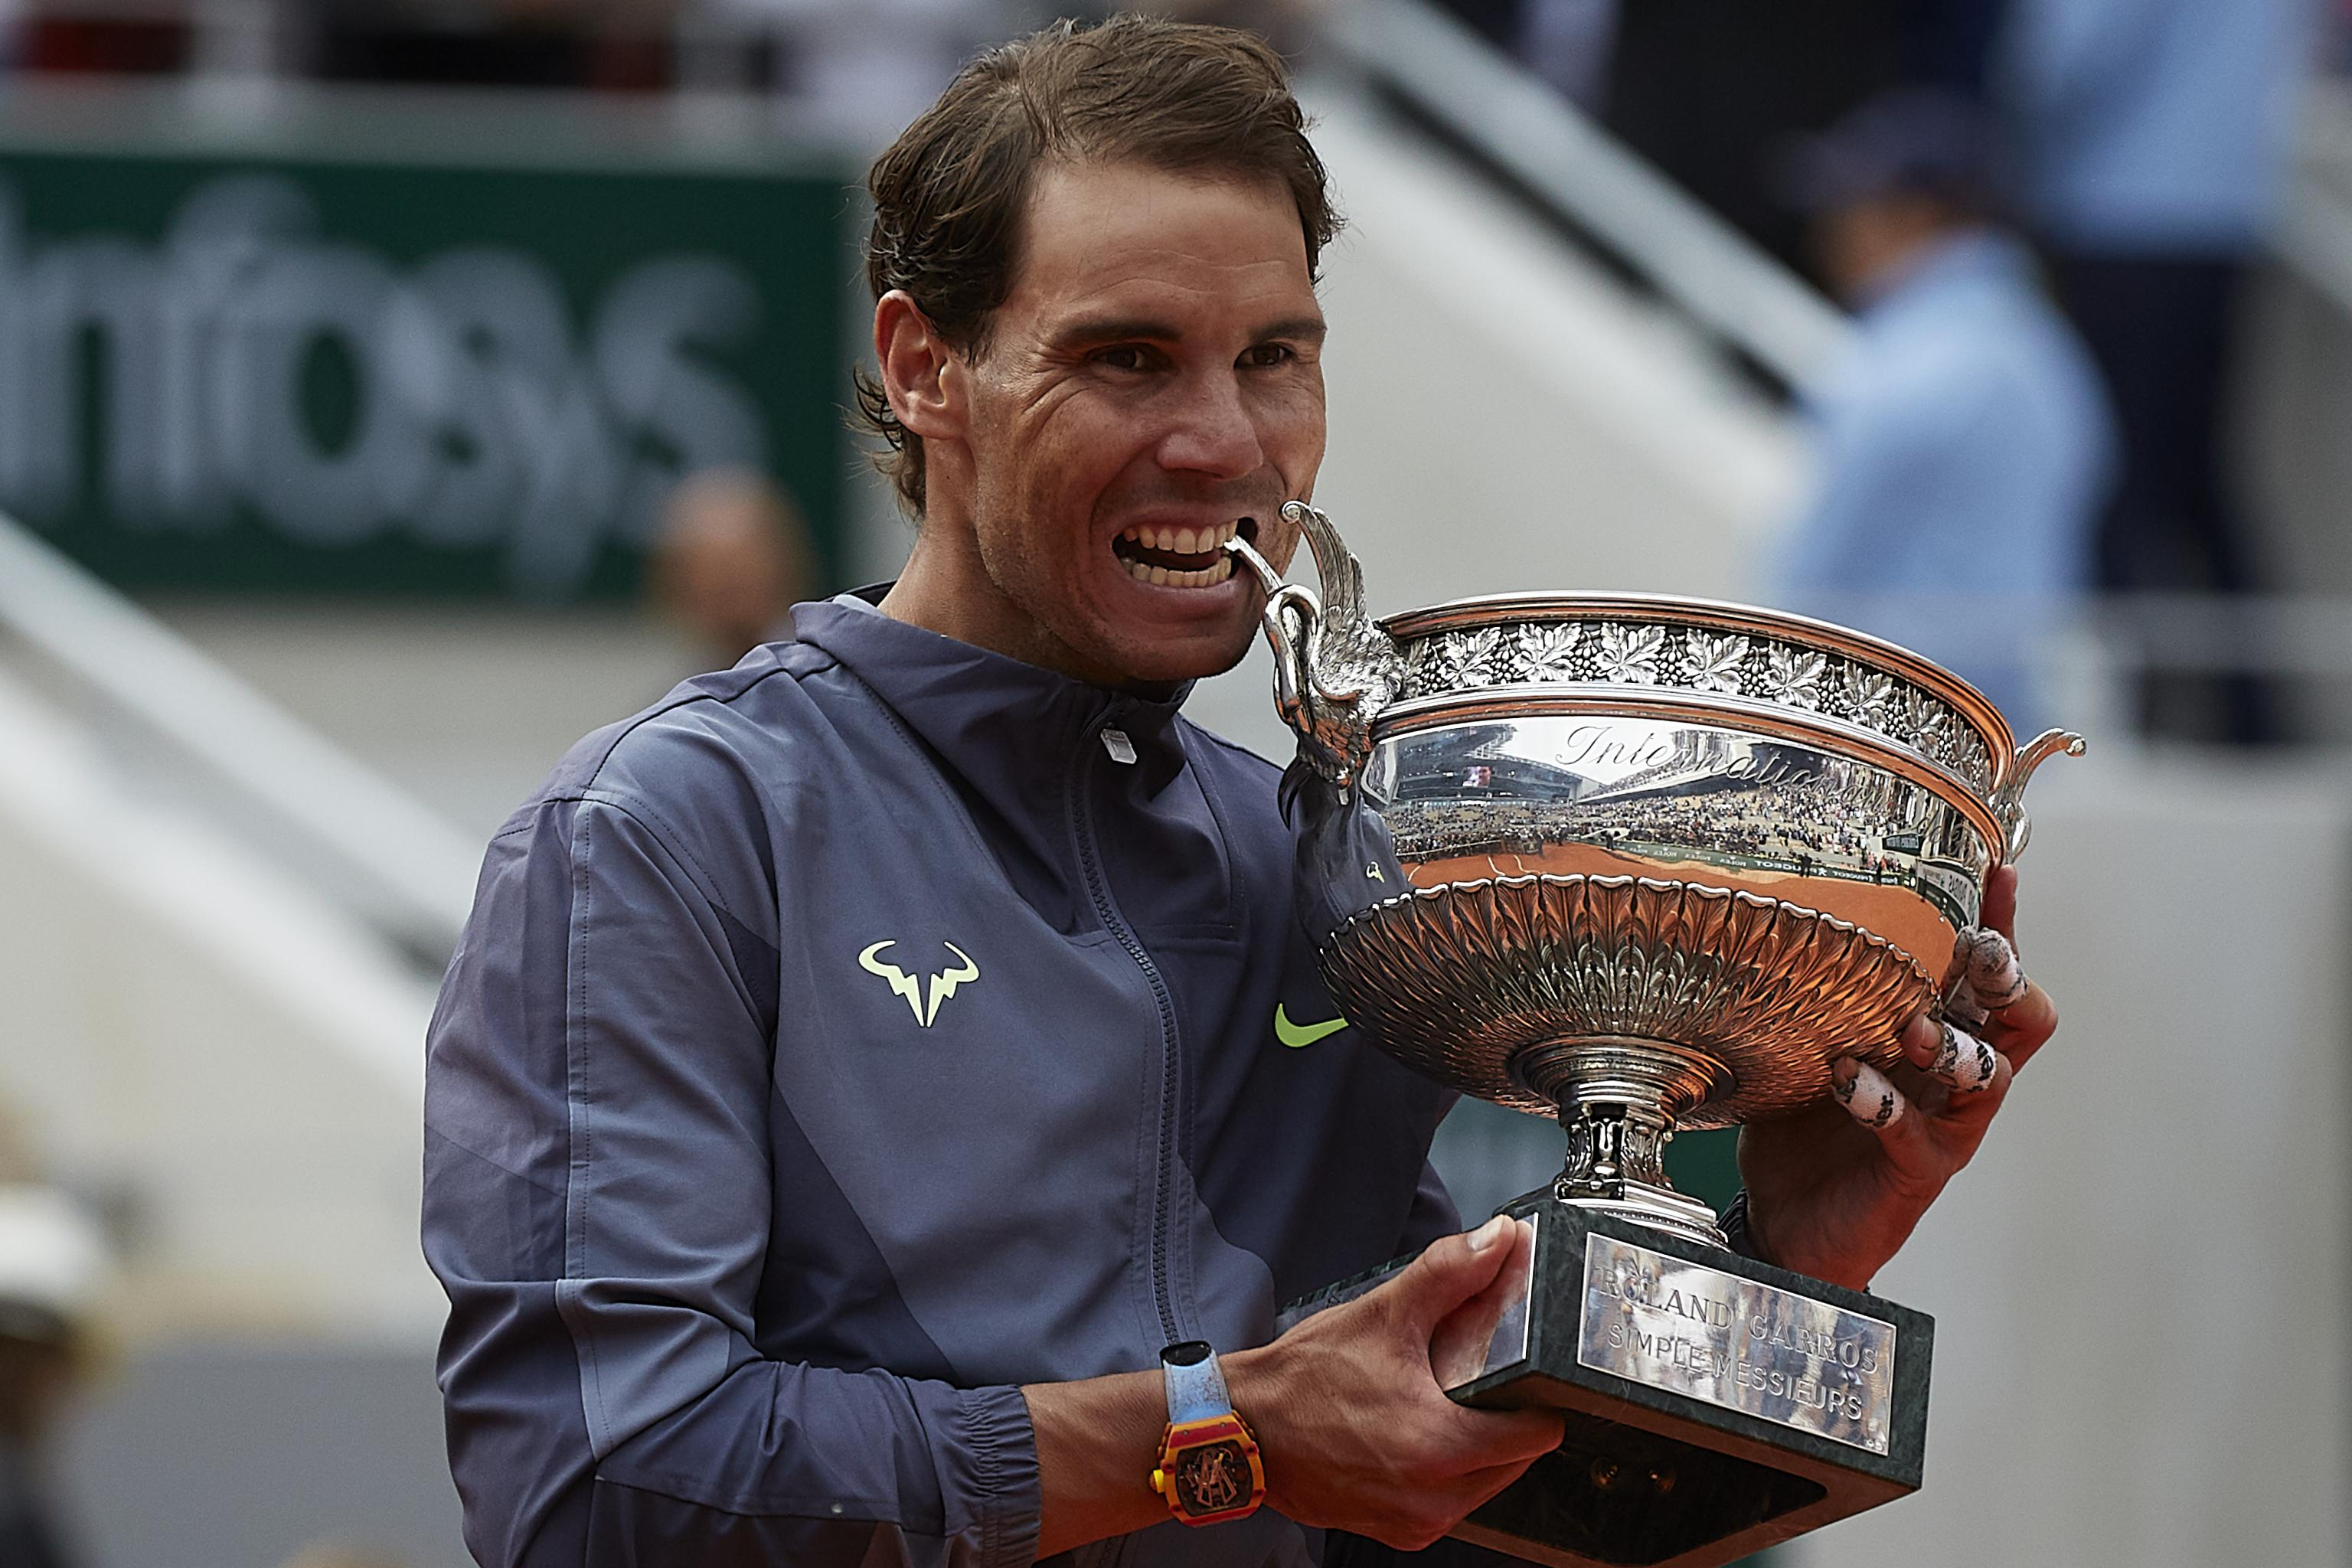 French Open 2019 Men S Finals Results Stats For Rafael Nadal Vs Dominic Thiem Bleacher Report Latest News Videos And Highlights